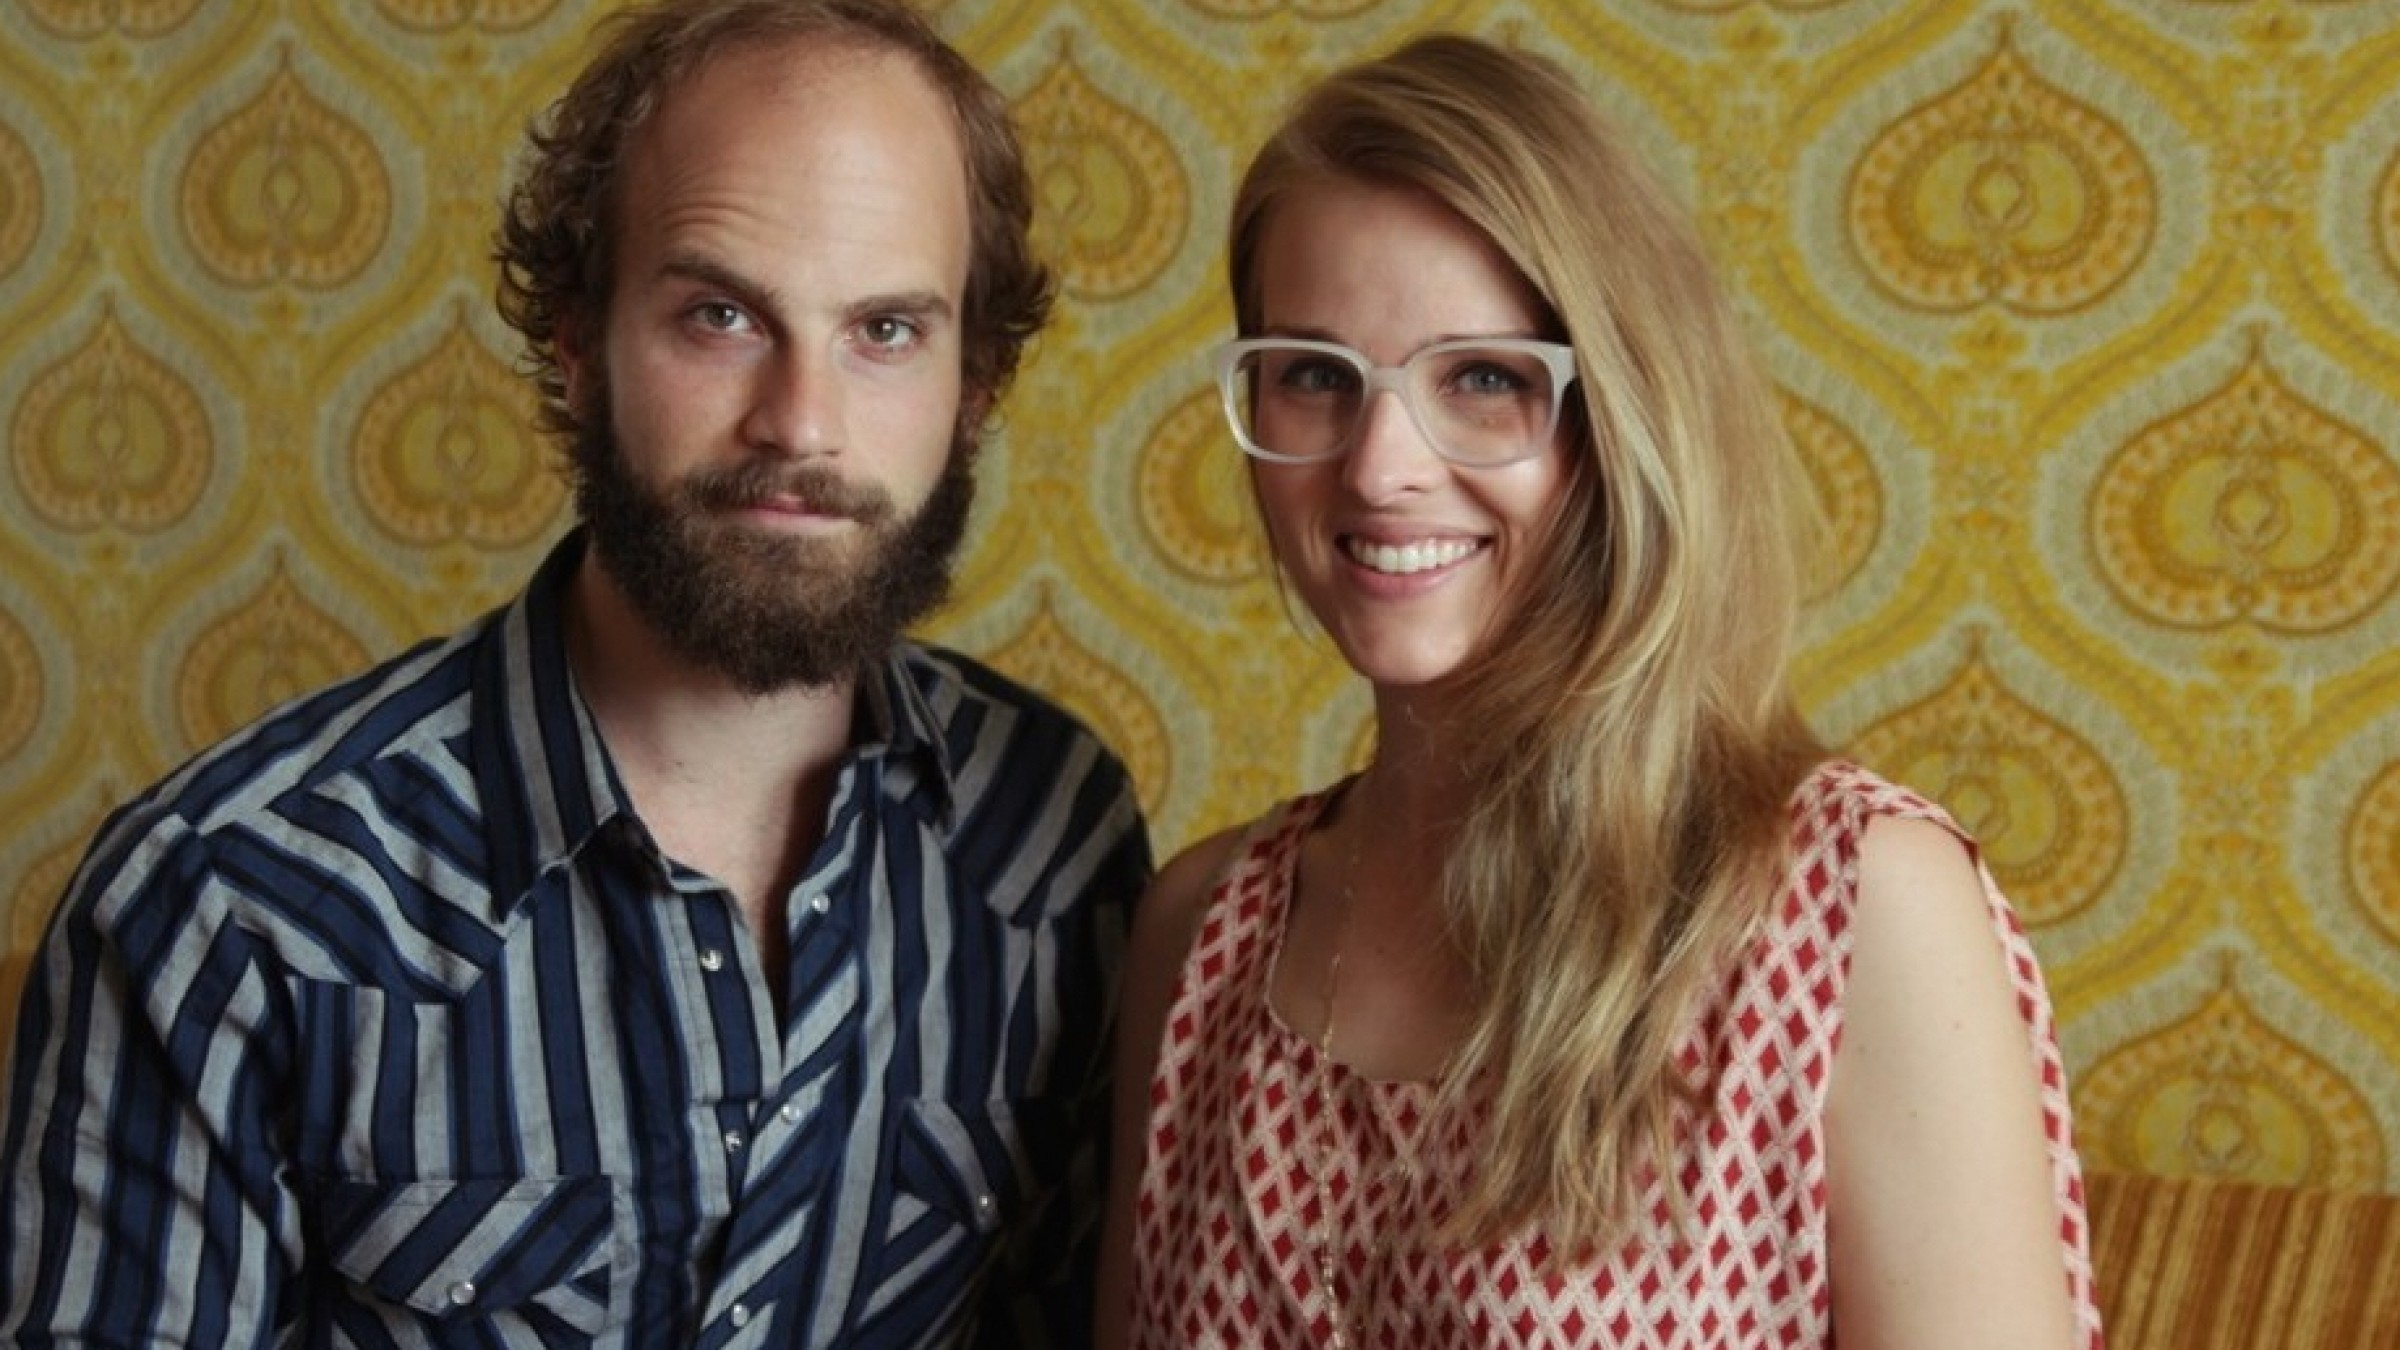 How Vimeo's 'High Maintenance' is Making the Web Series